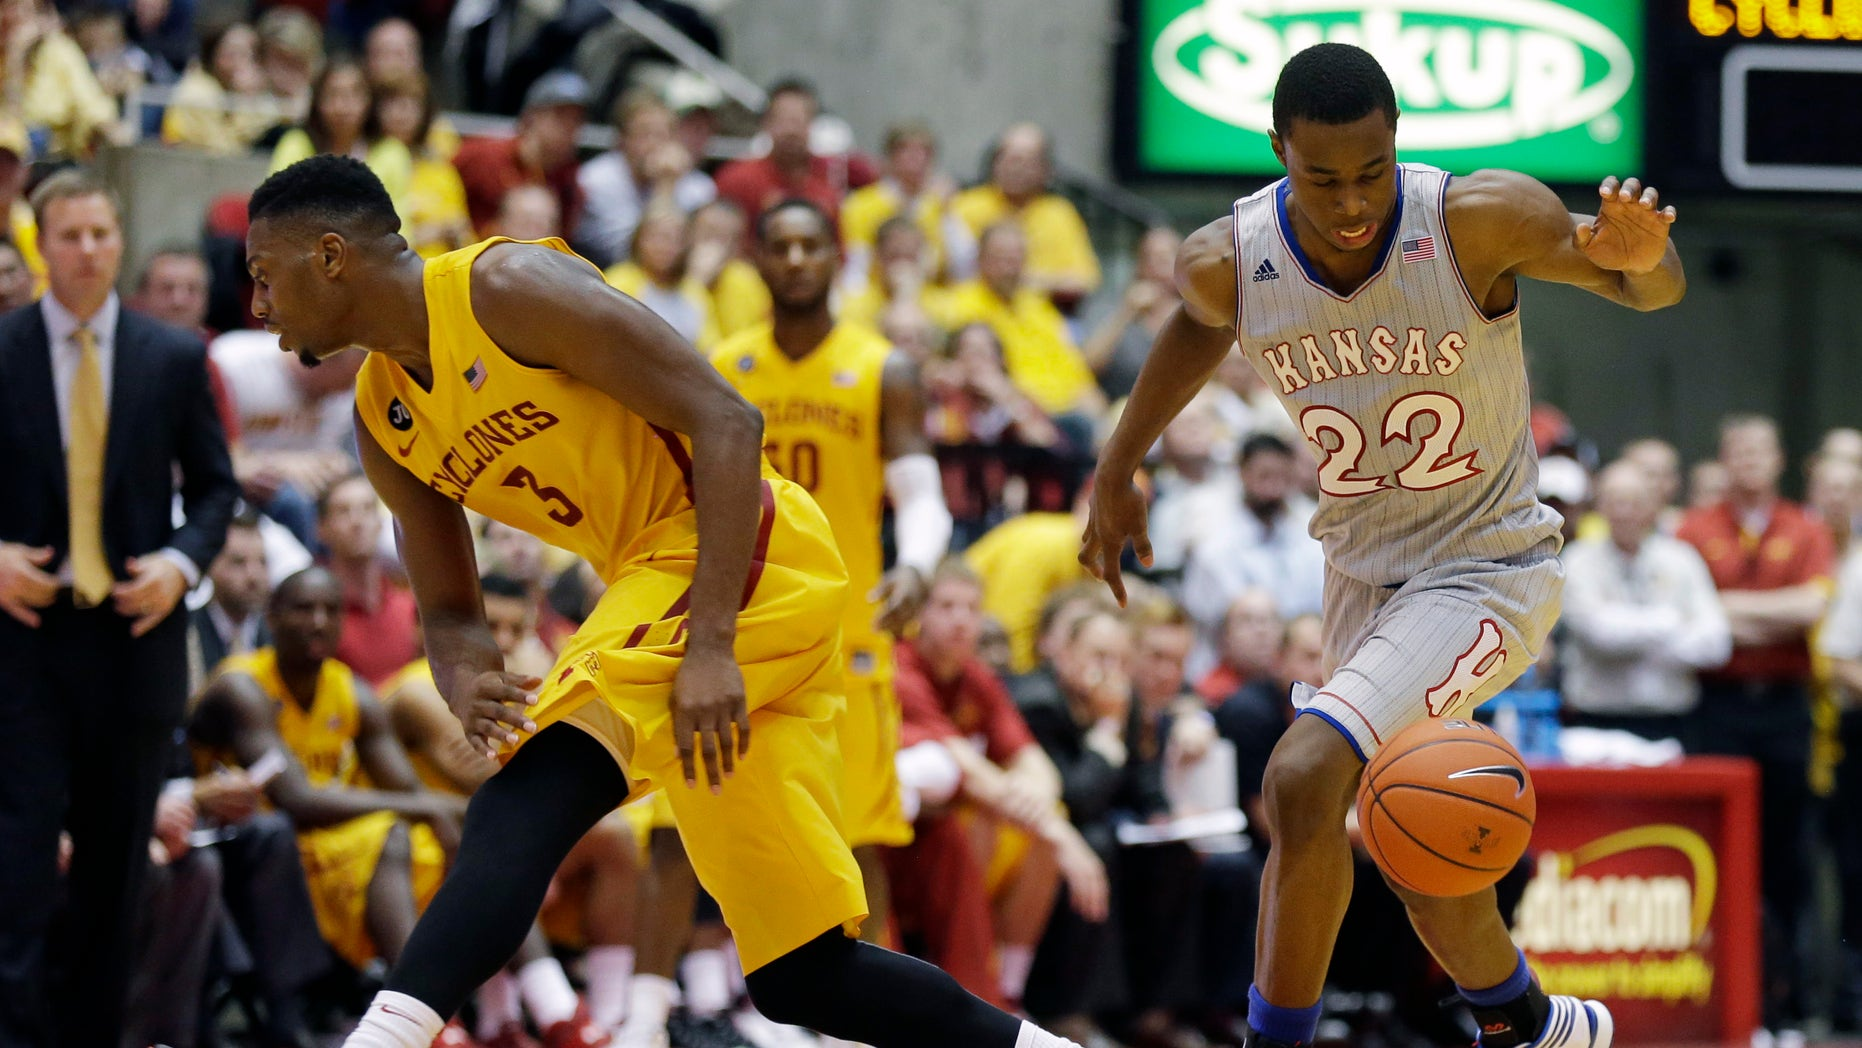 Kansas guard Andrew Wiggins, right, drives past Iowa State forward Melvin Ejim during the second half of an NCAA college basketball game, Monday, Jan. 13, 2014, in Ames, Iowa. Kansas won 77-70. (AP Photo/Charlie Neibergall)